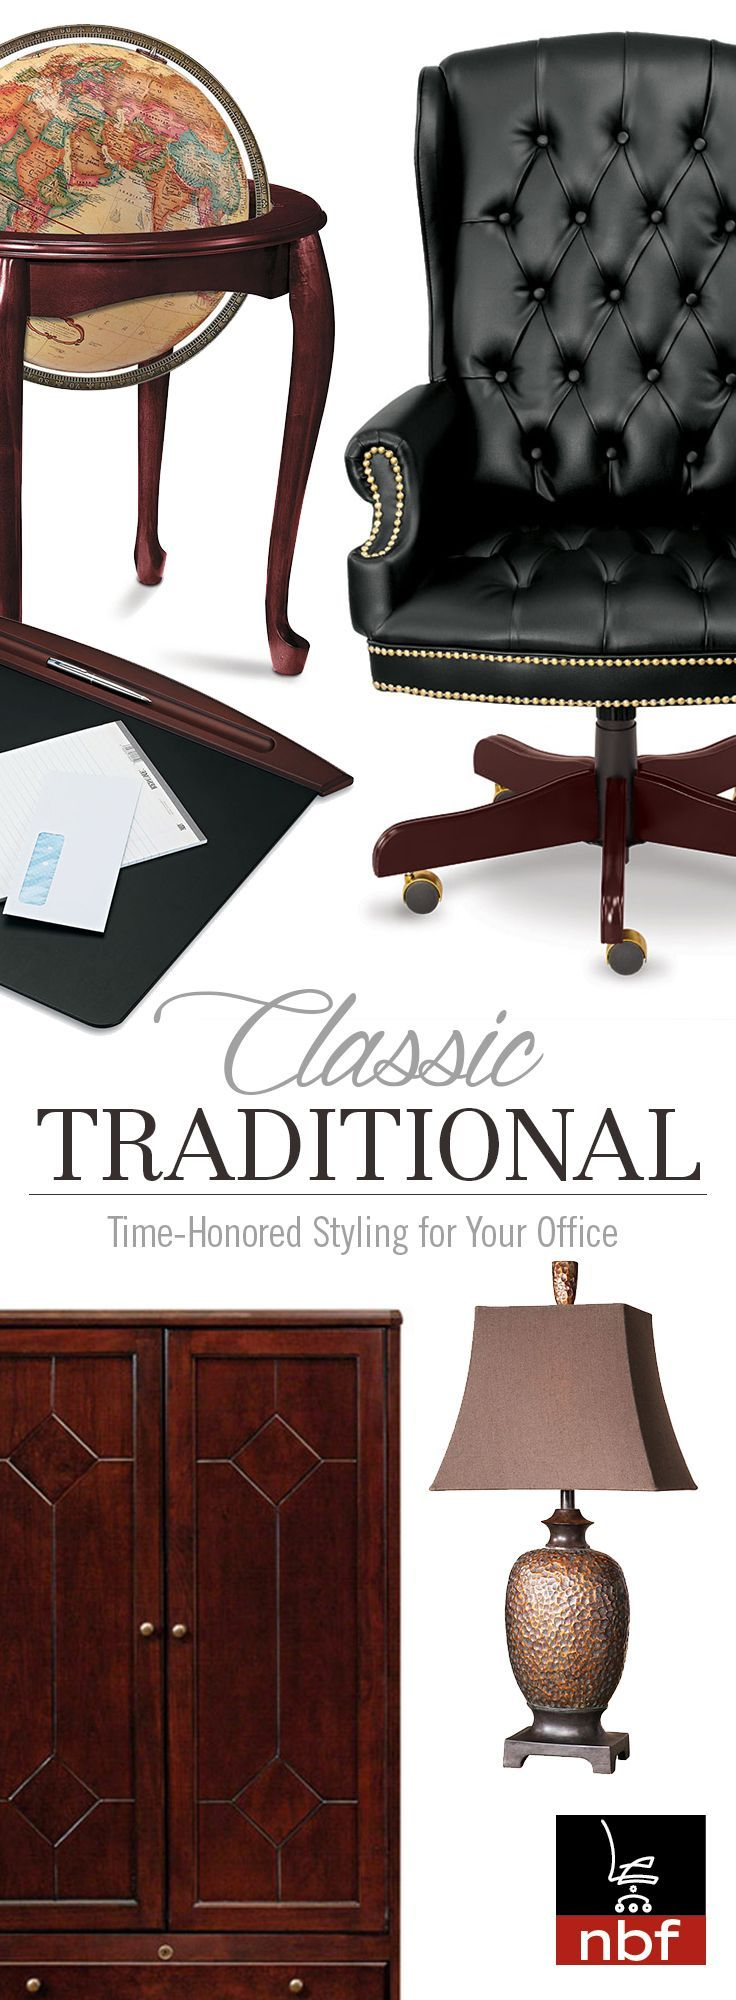 Sumptuous tudor style homes method philadelphia traditional bathroom - Classic Traditional Office Furniture Time Honored Styling For Your Office